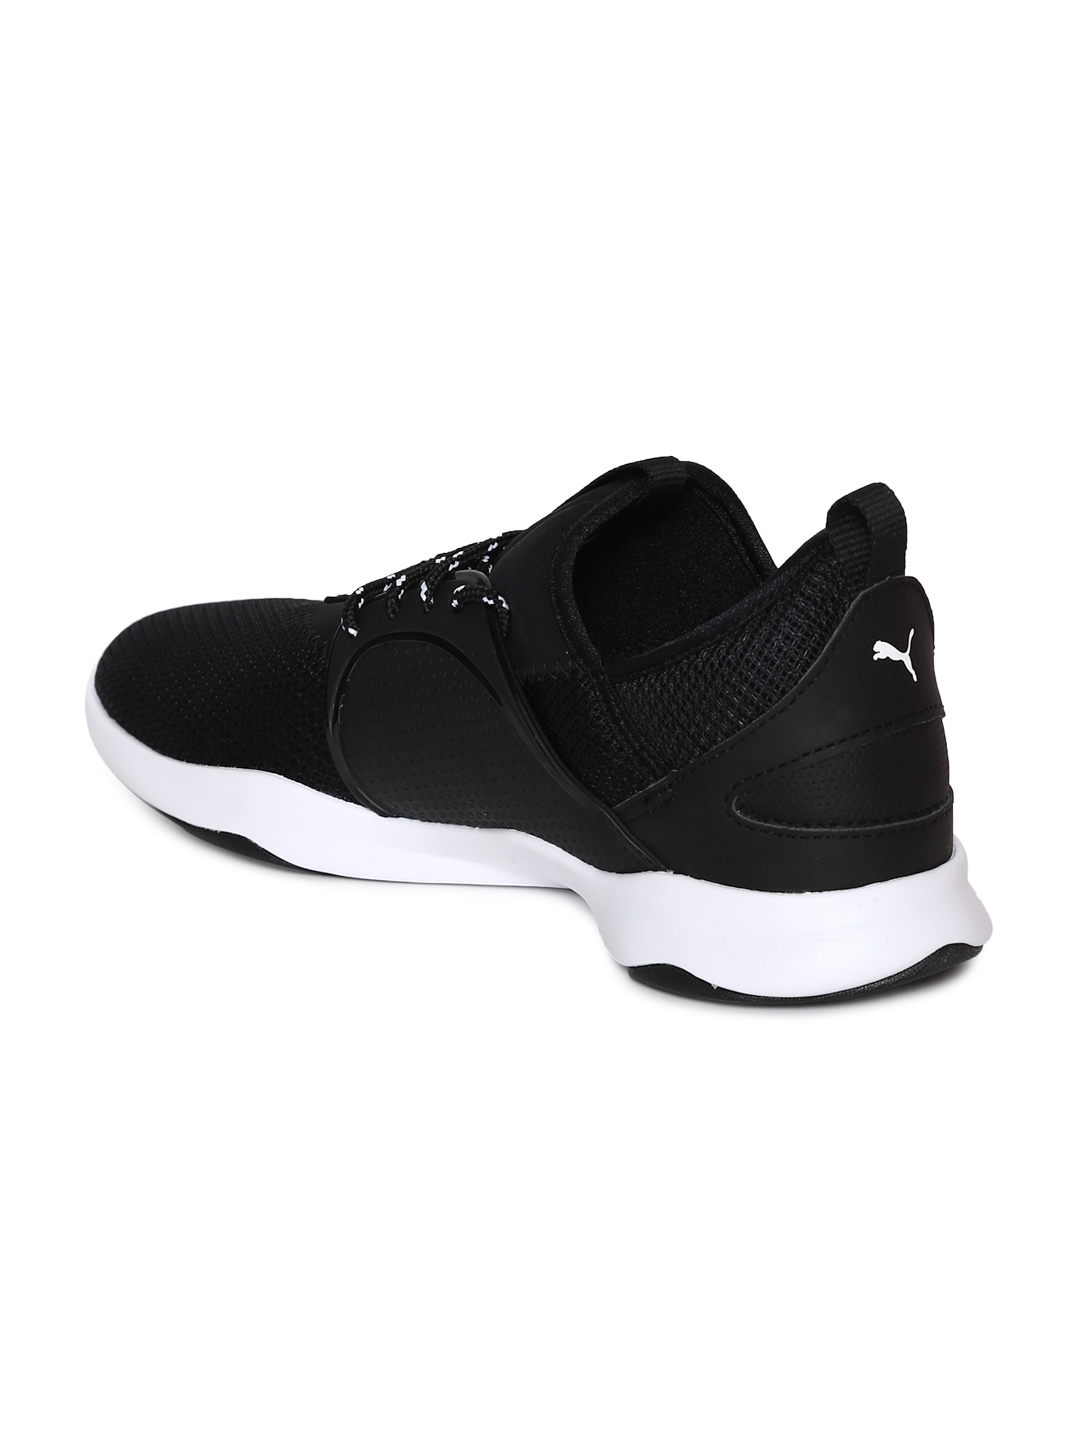 40280dd829dc Buy Puma Unisex Black Dare Lace Sneakers - Casual Shoes for Unisex ...